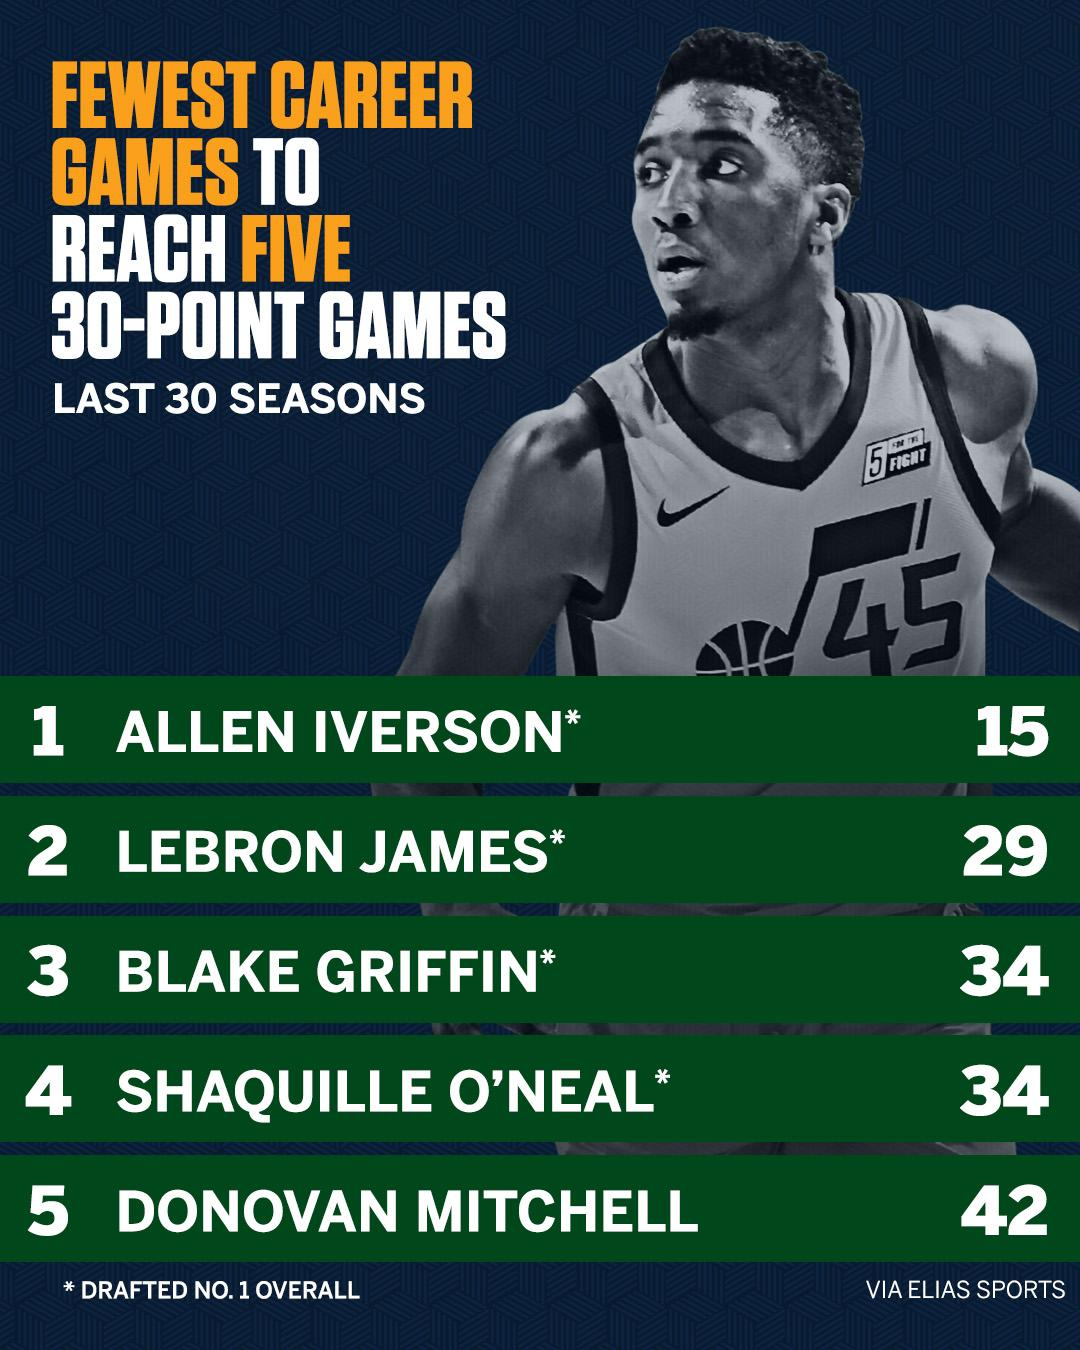 Donovan Mitchell is in some elite company. https://t.co/m4QC6nzADD